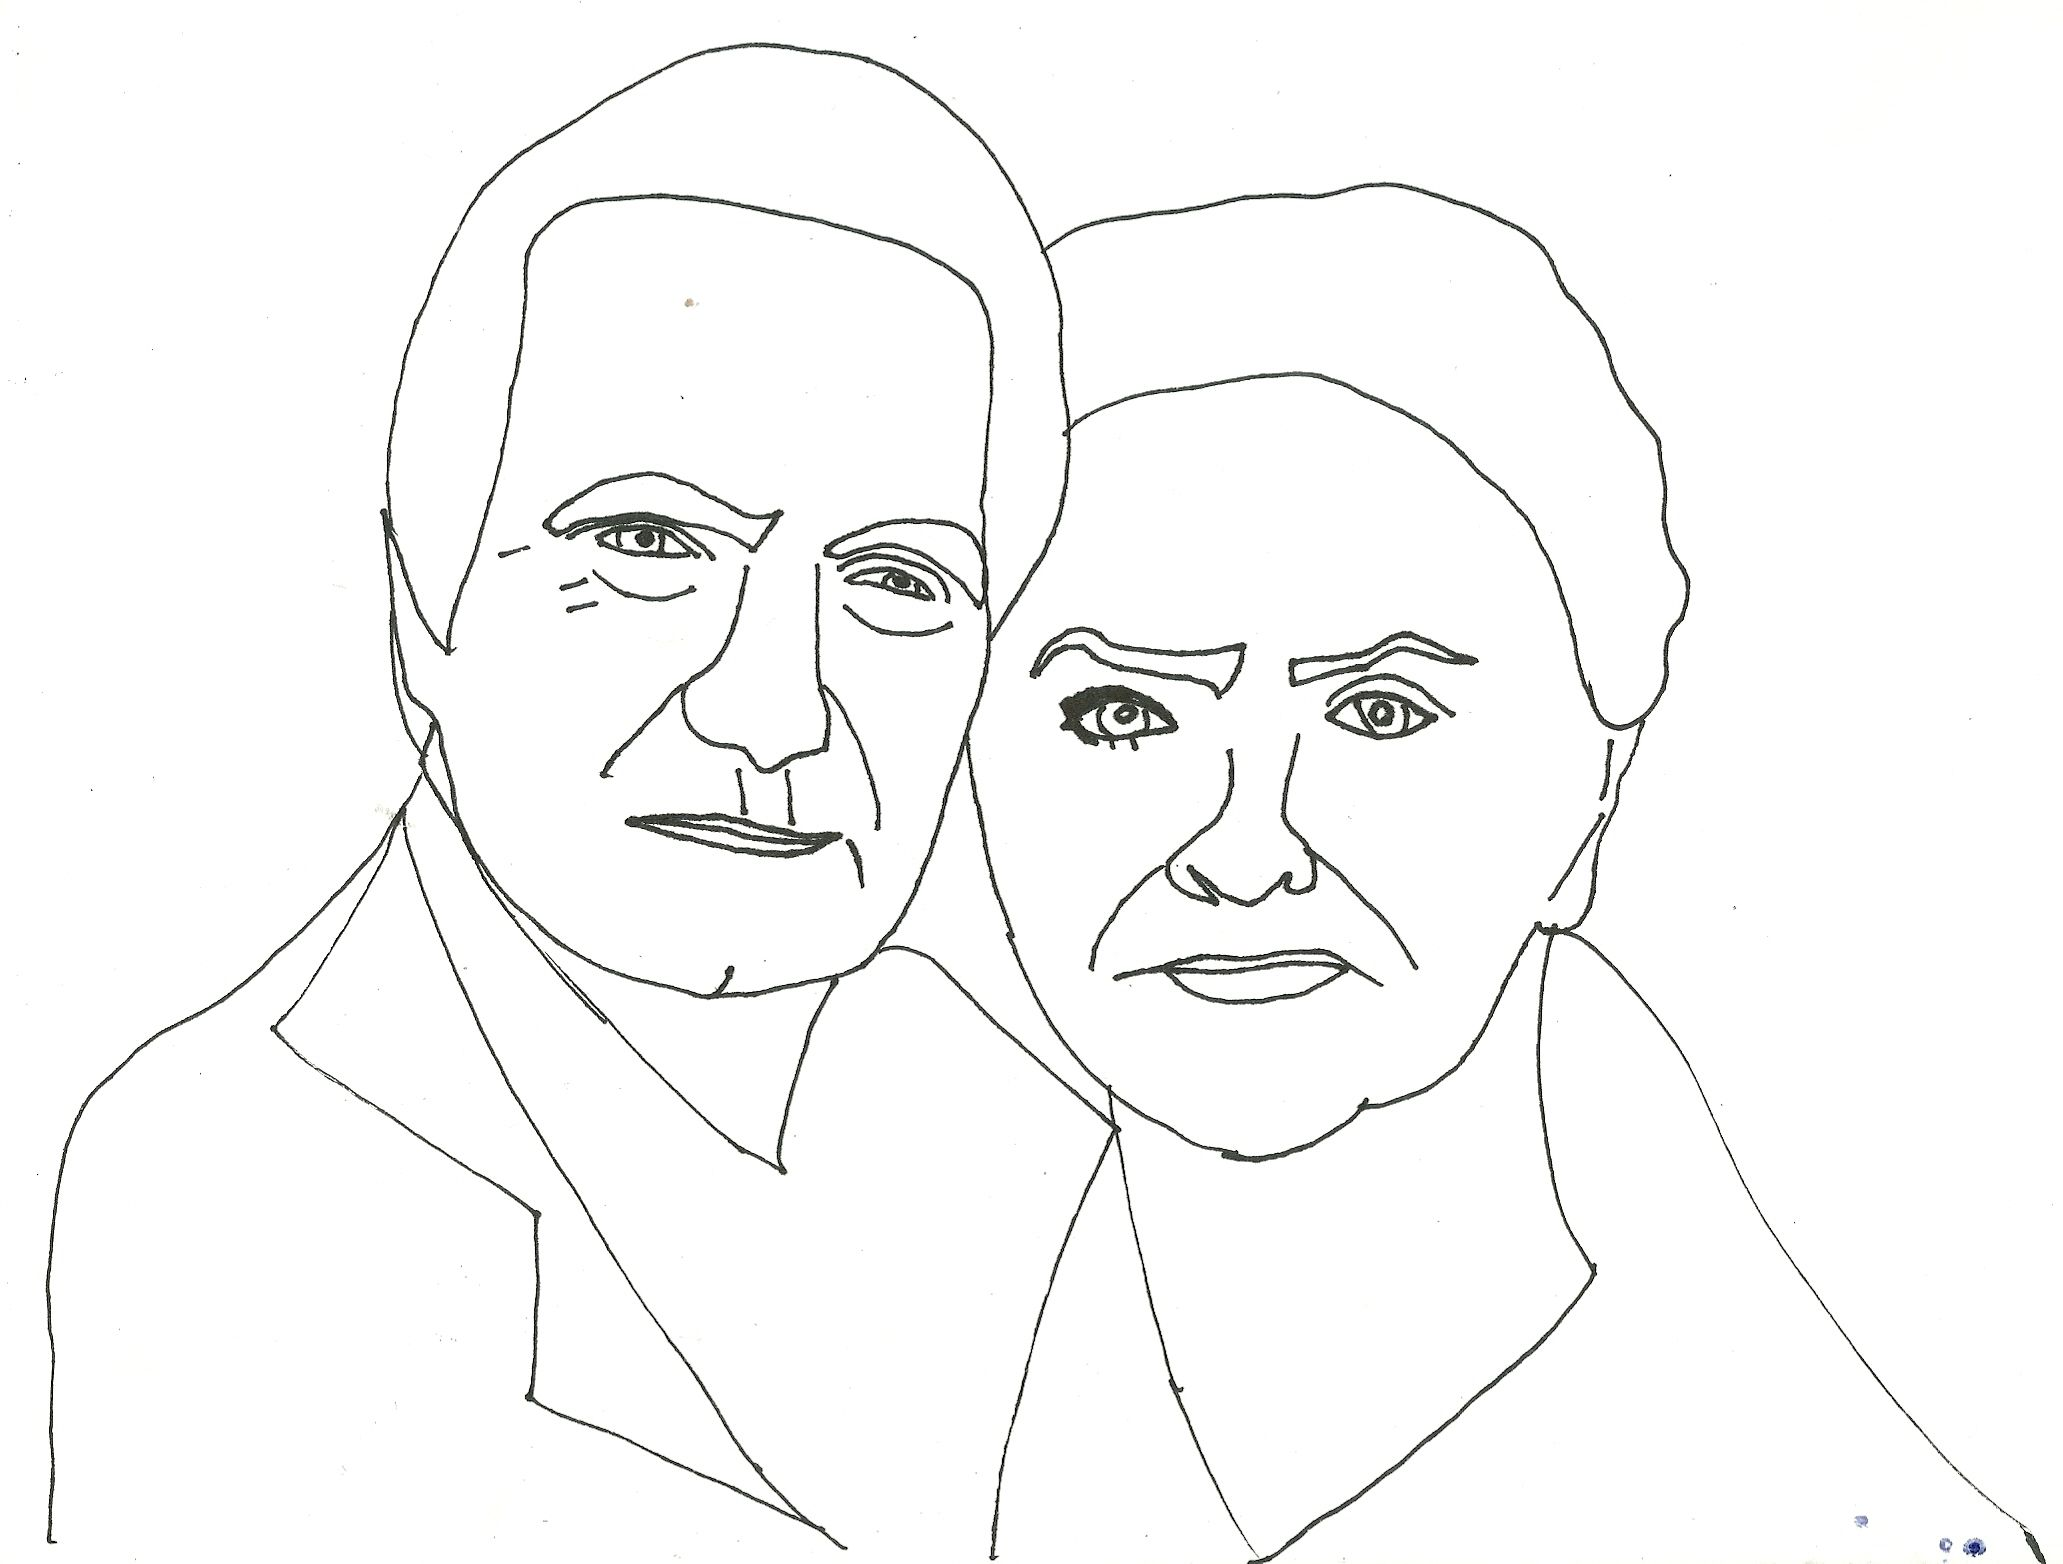 susan flannery and john mccook celebrity coloring page - Celebrity Coloring Book